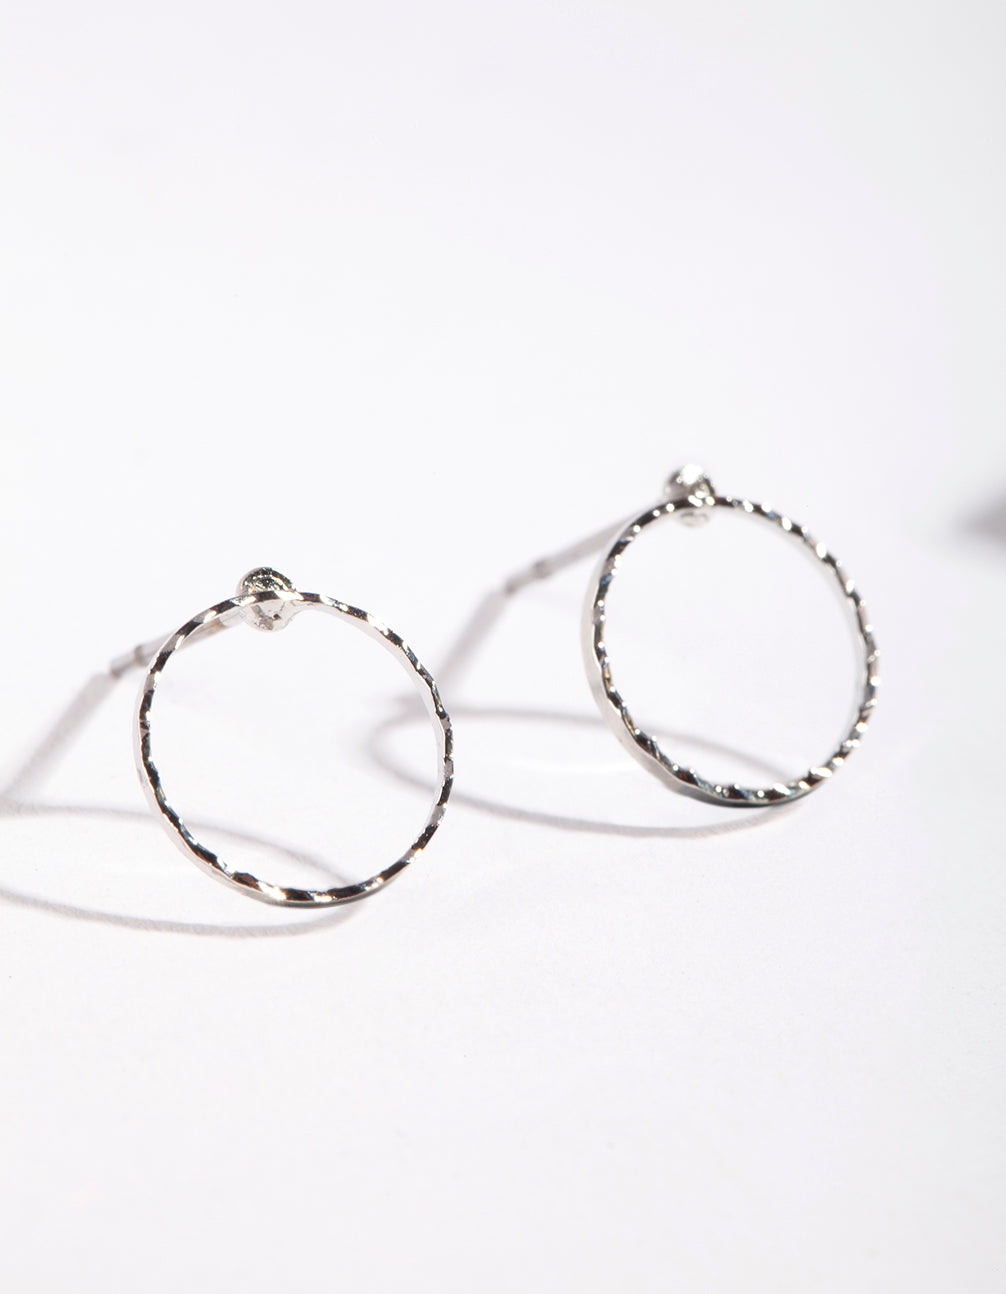 Rhodium Open Circle Stud Earrings